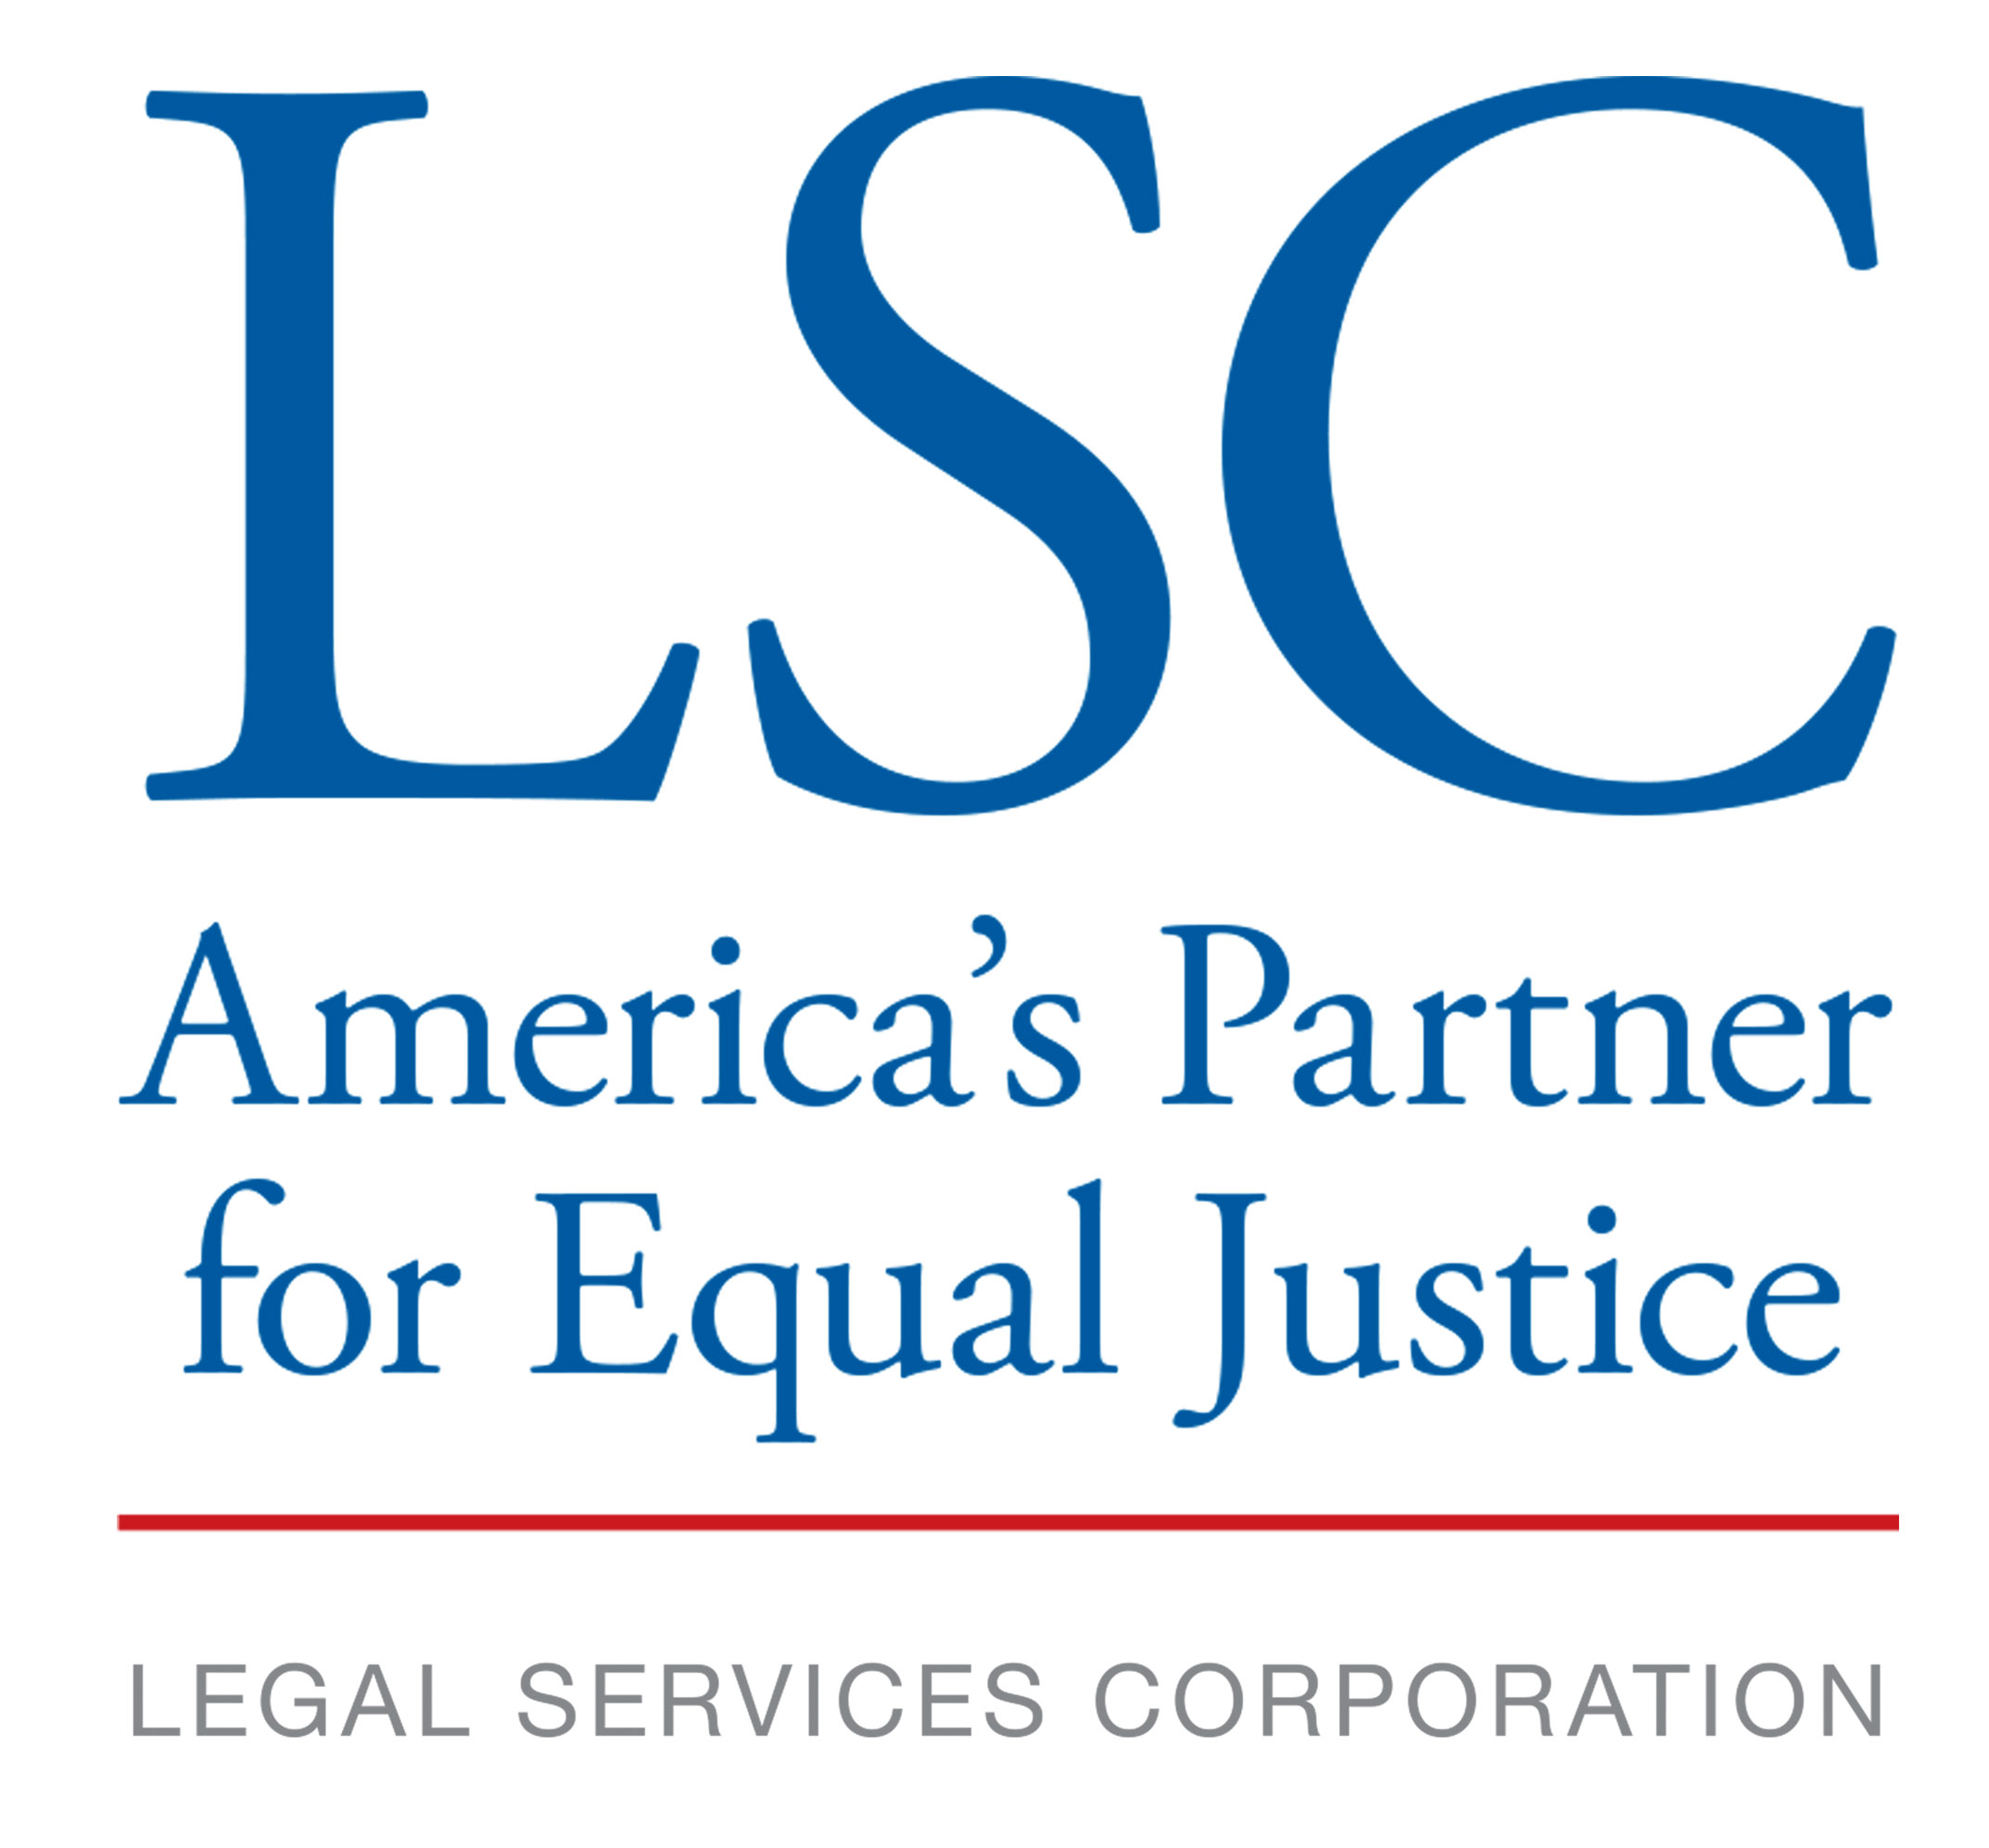 LSC America's Partner for Equal Justice Legal Services Corperation